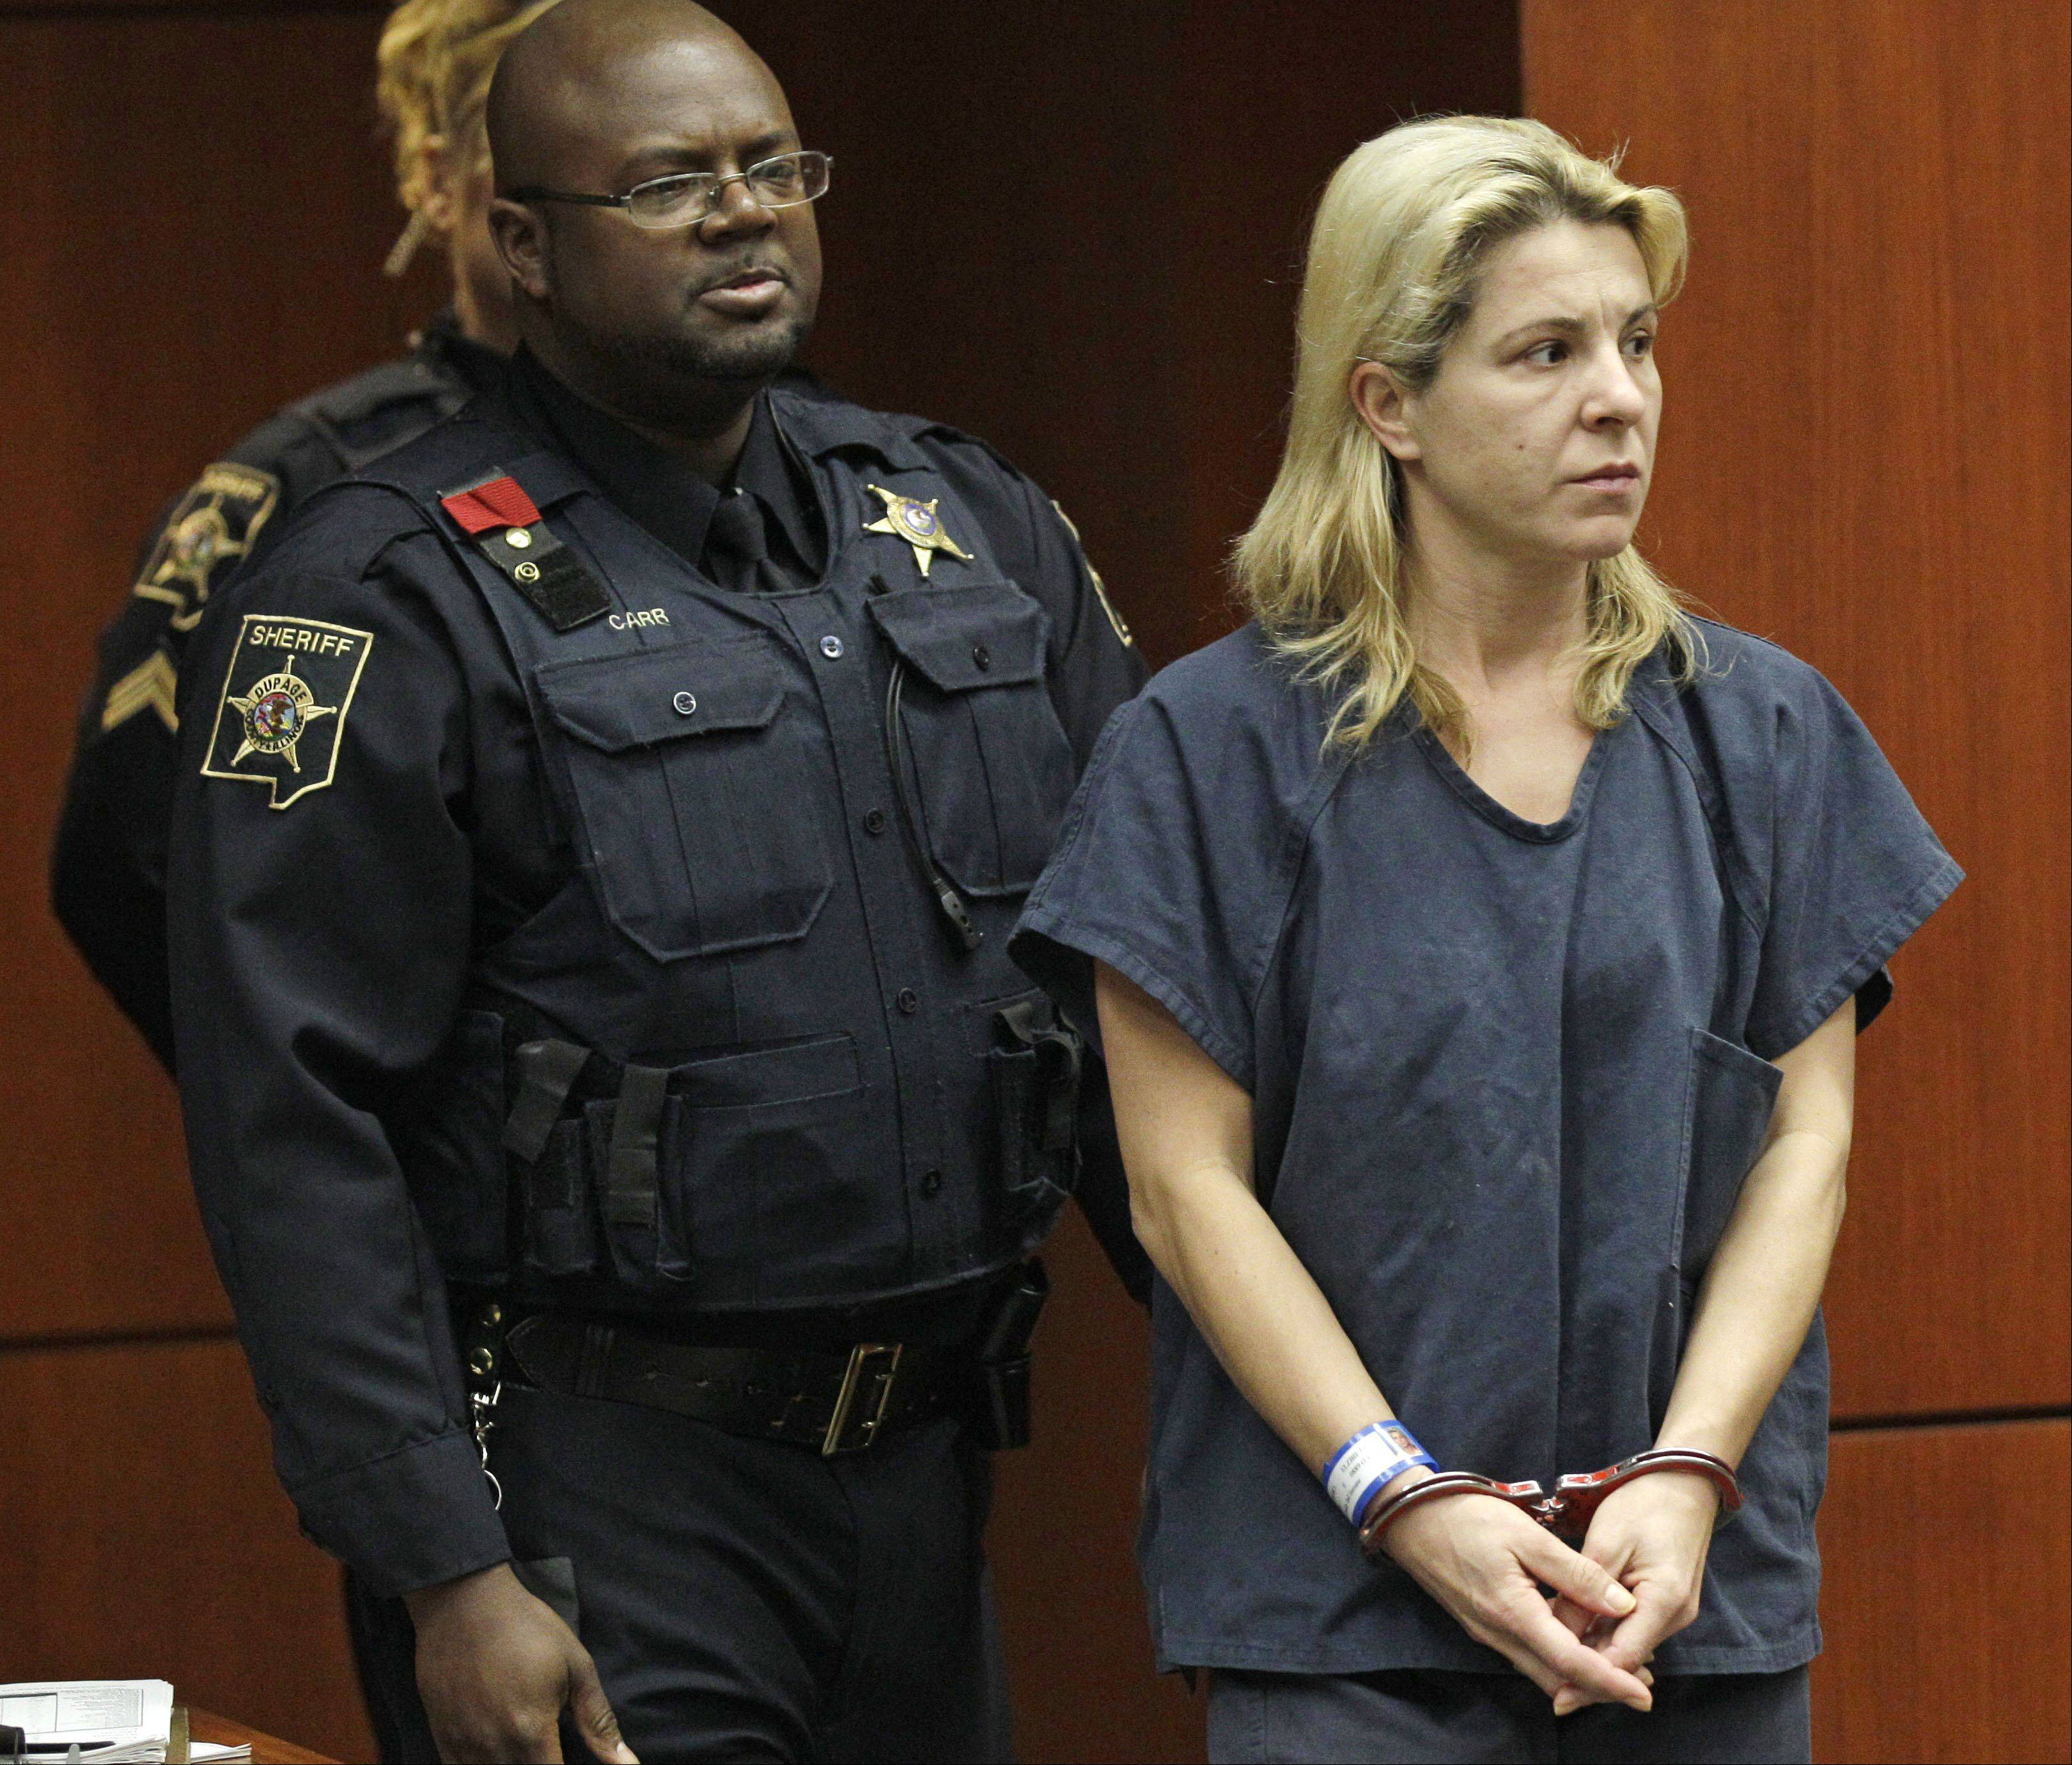 As cameras roll, Naperville mom pleads innocent